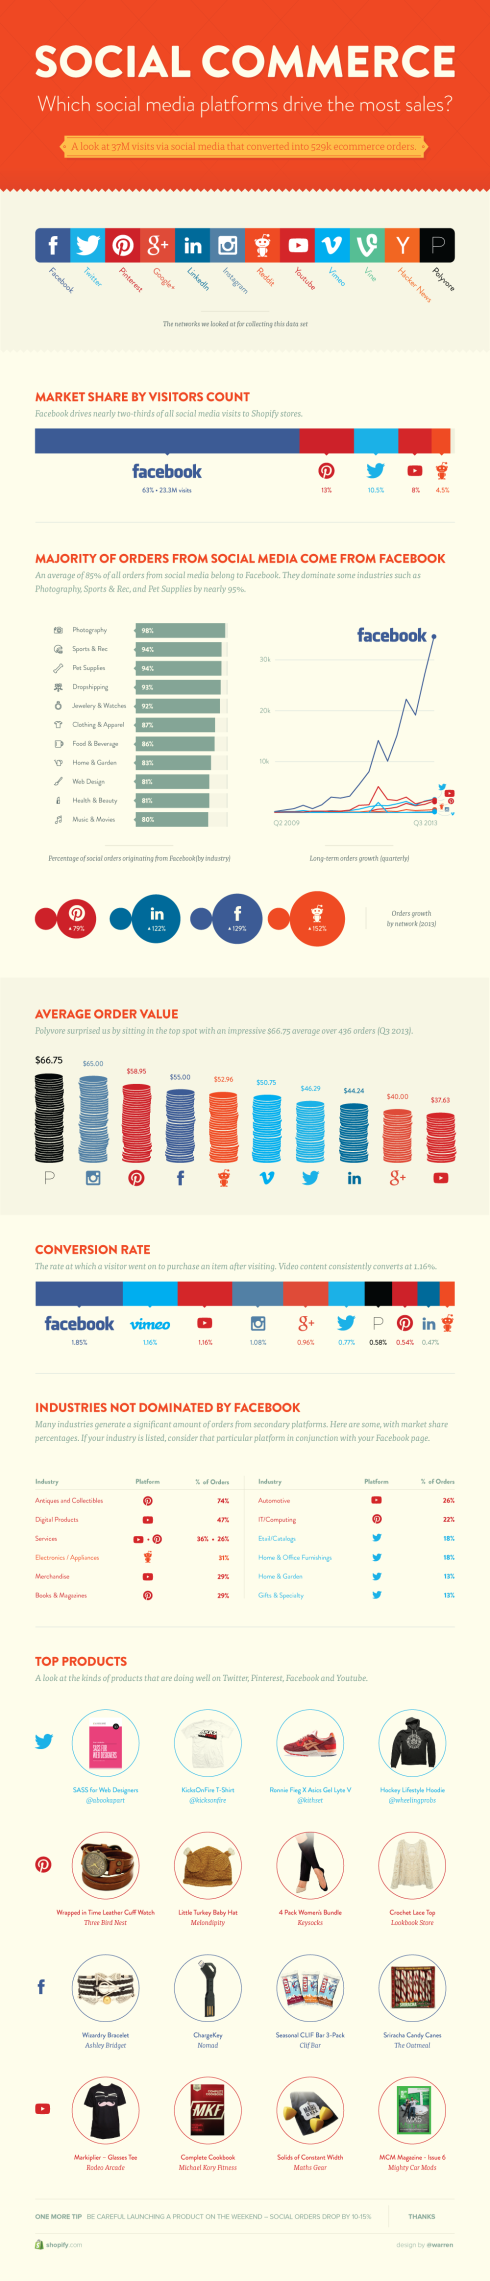 The Most Effective Social Media Platforms for Social Commerce [INFOGRAPHIC]